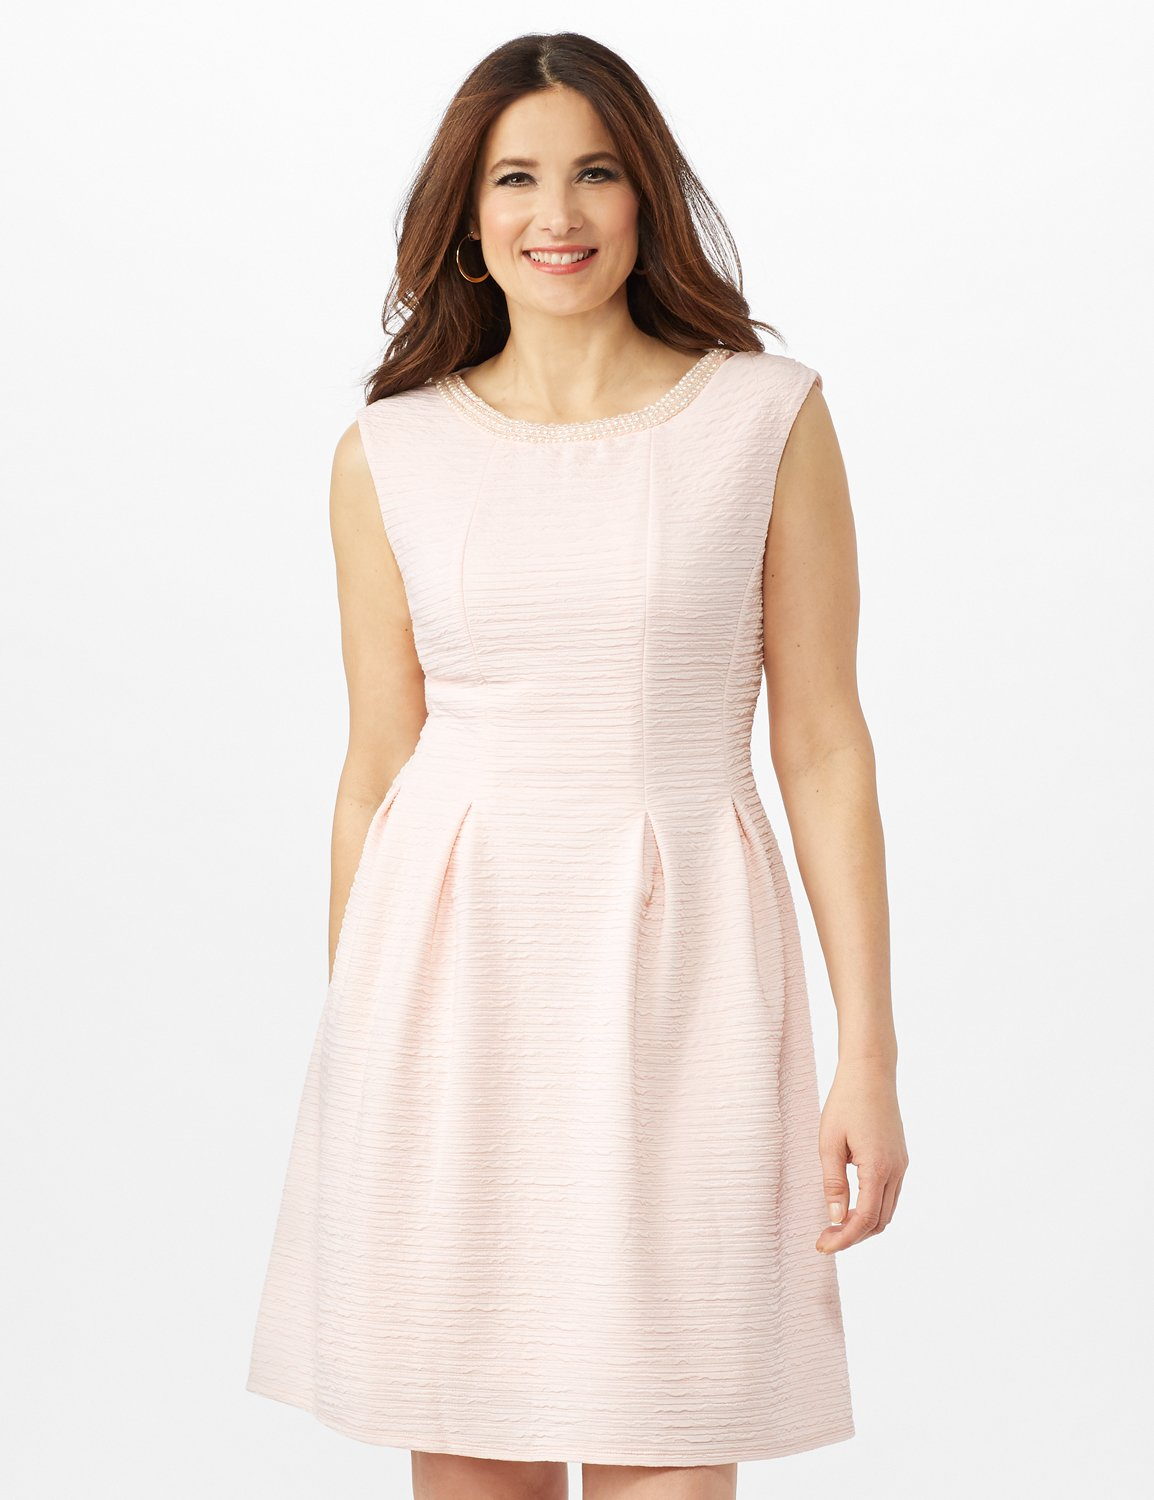 Textures Knit Dress with Embellished Neck -Peach - Front